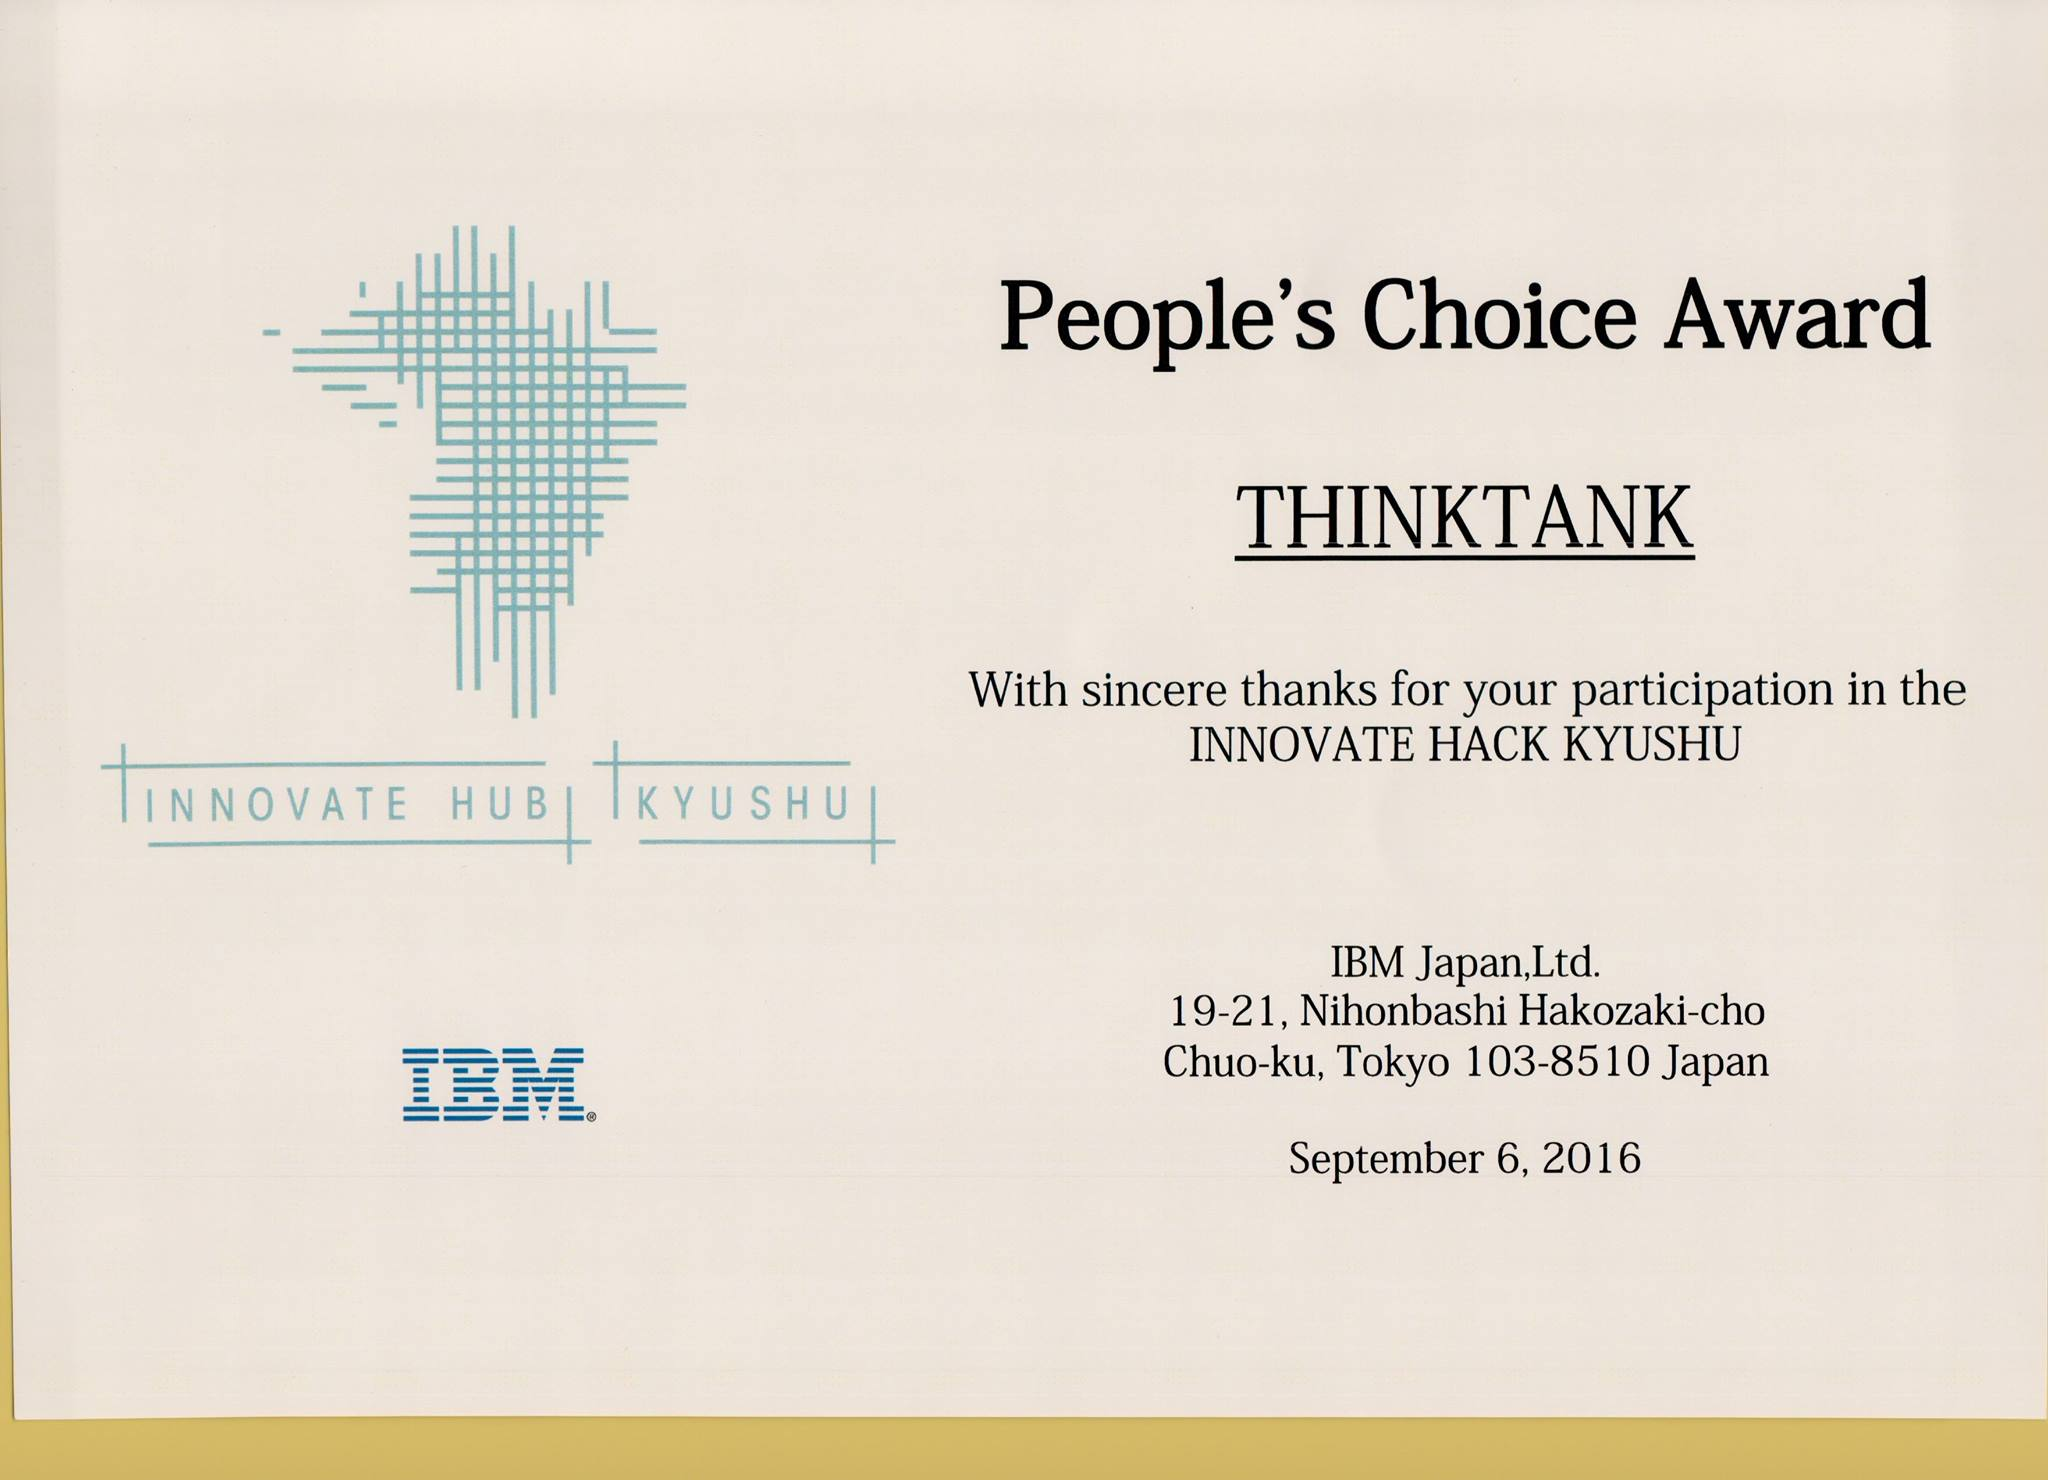 People's Choice Award at Japan Kyushu hackathon .